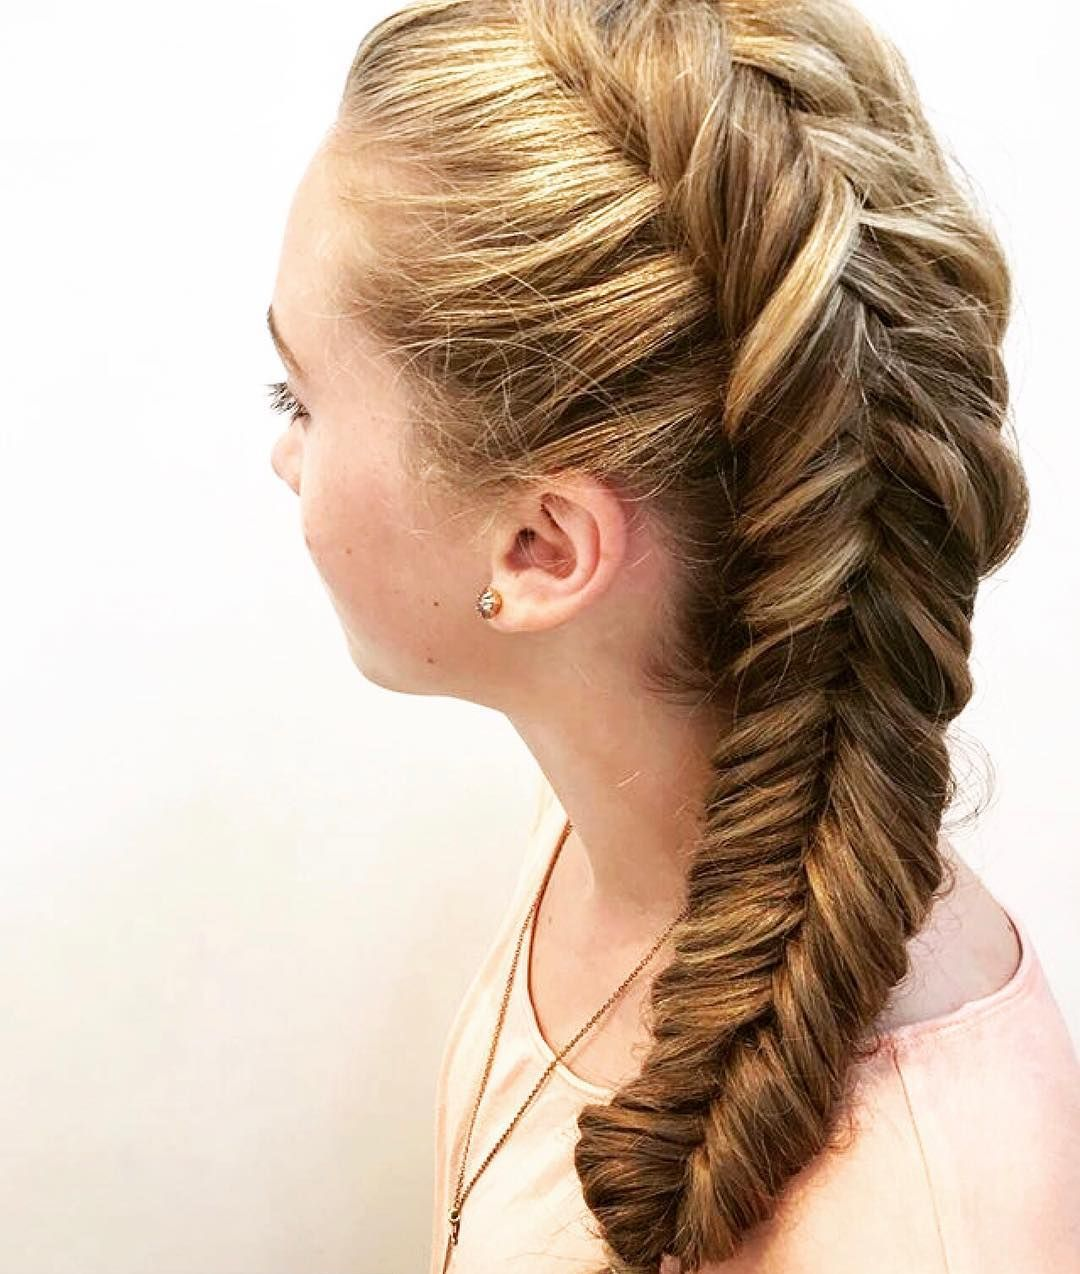 trendy braided hairstyle that are style statement braids